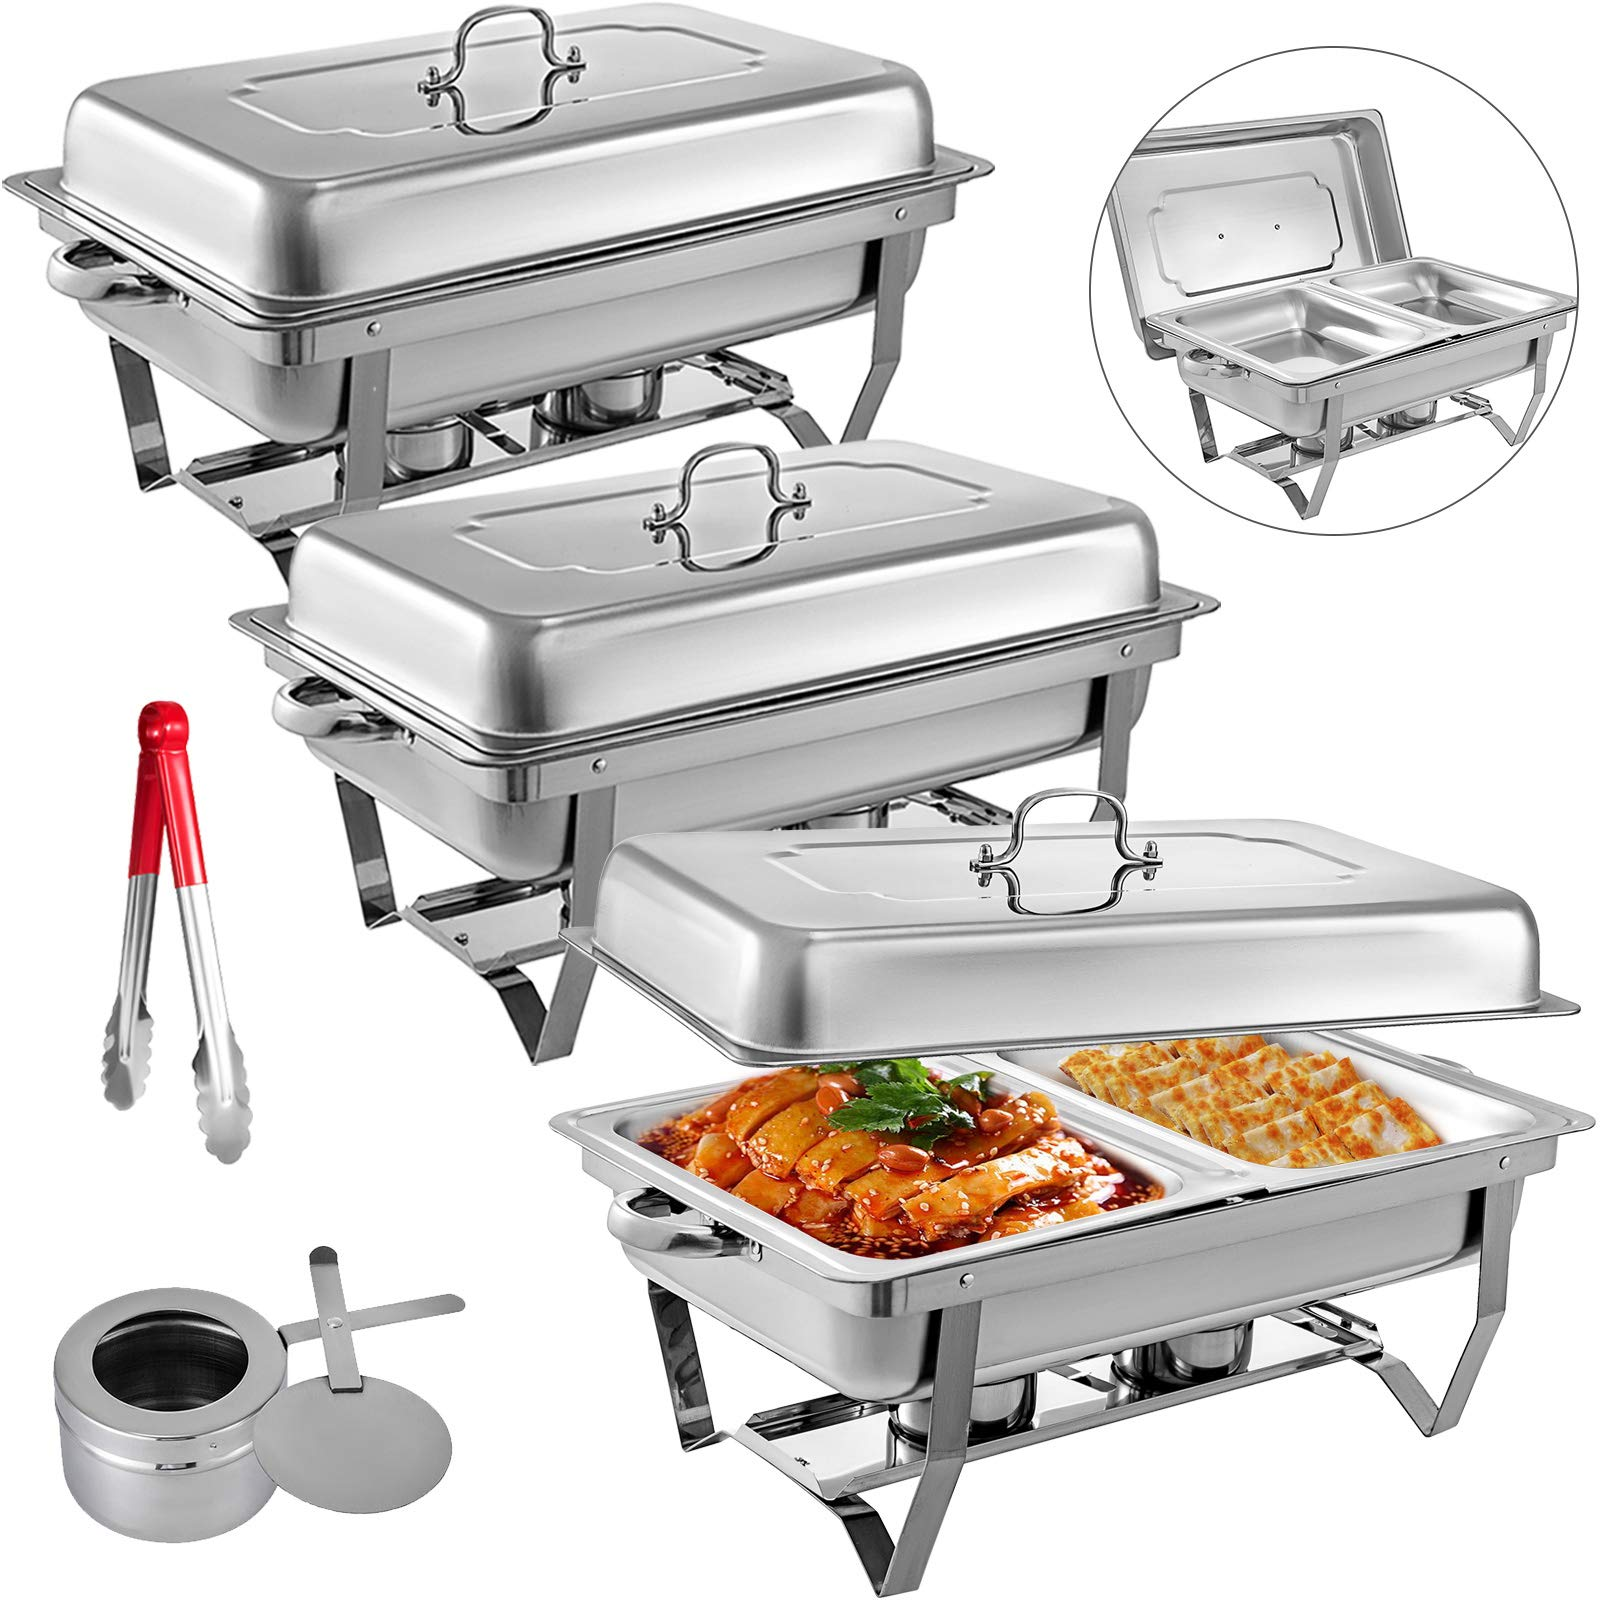 Mophorn 3 Packs Stainless Steel Chafing Dishes 2 Half Size Pans 8 Quart Rectangular Chafer Complete Set by Mophorn